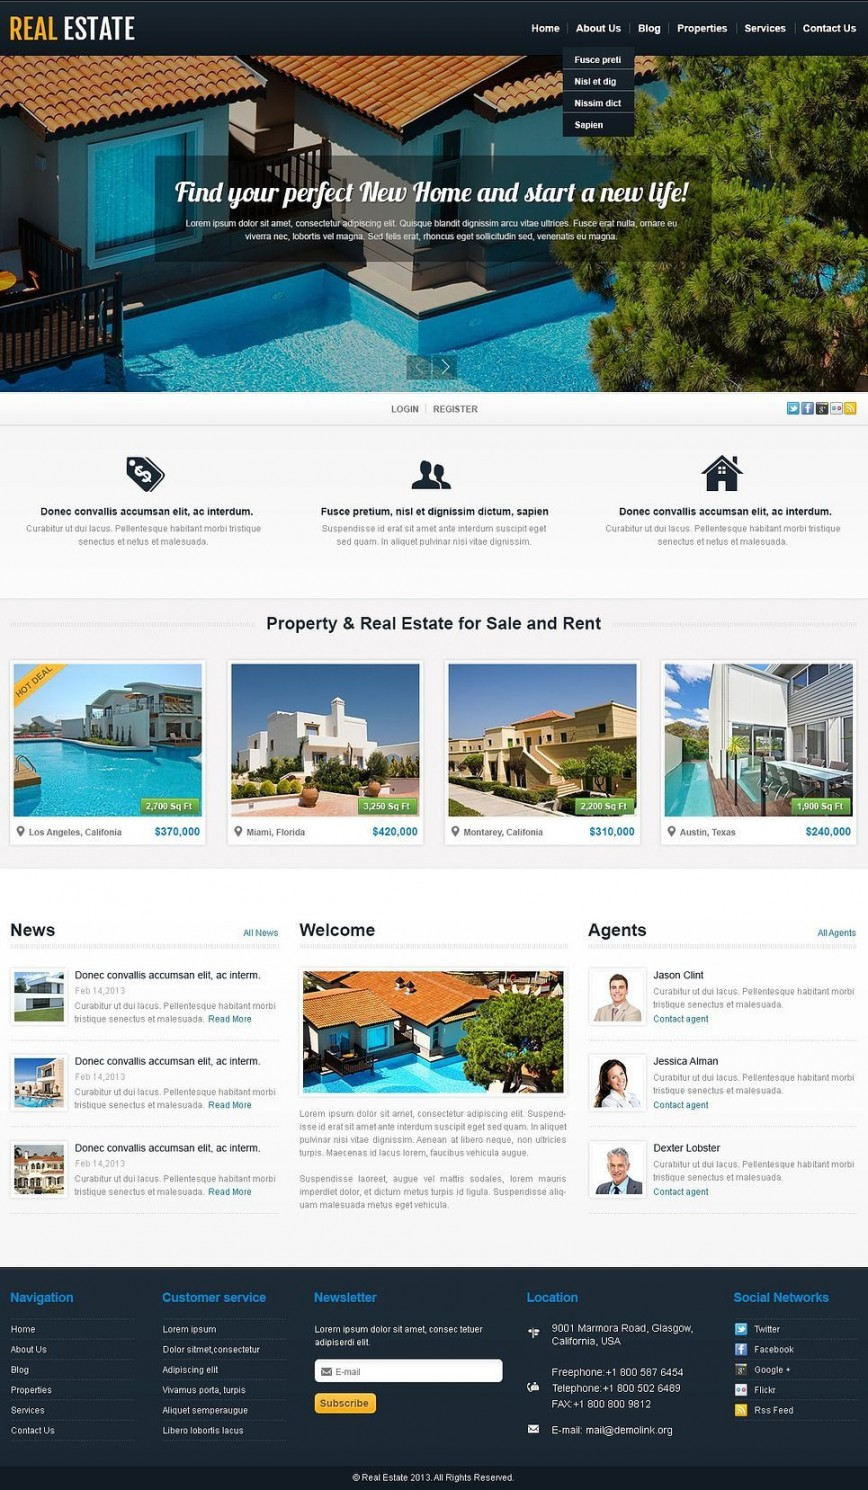 000 Exceptional Real Estate Template Wordpres High Resolution  Homepres - Theme Free Download Realtyspace868